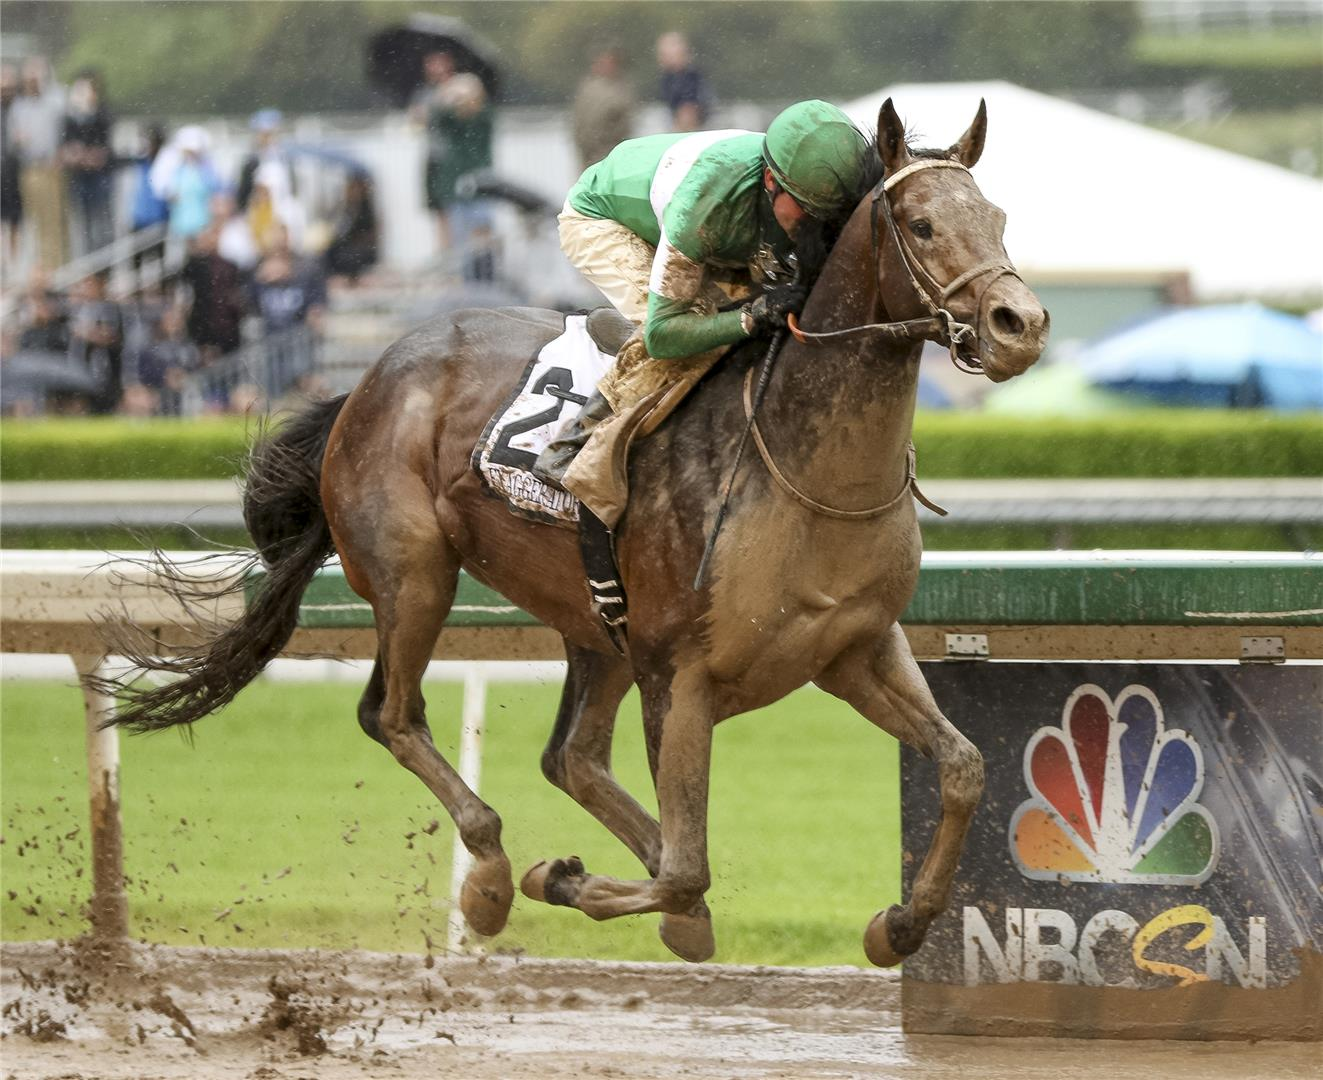 Santa Anita Derby (G1) winner Exaggerator to stand at WinStar upon retirement title=